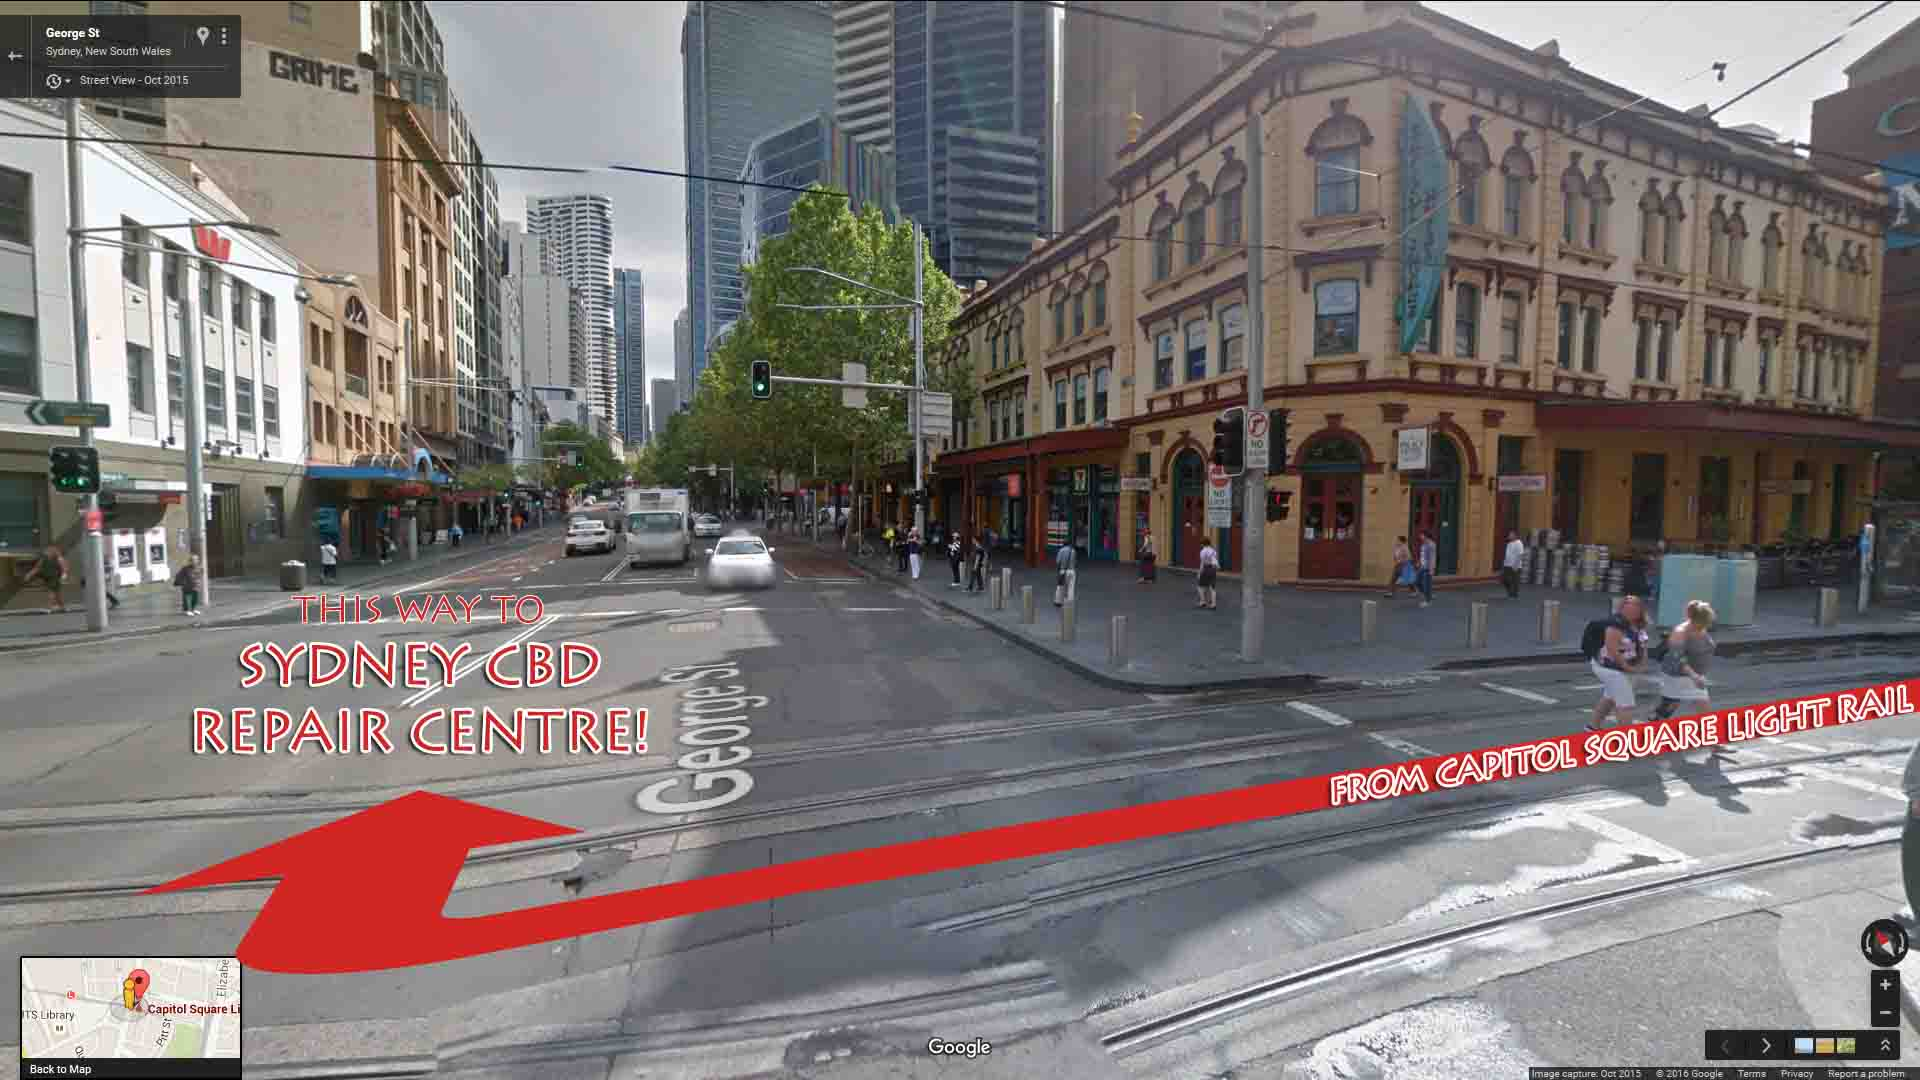 Capitol Square Light Rail to Sydney CBD Repair Centre